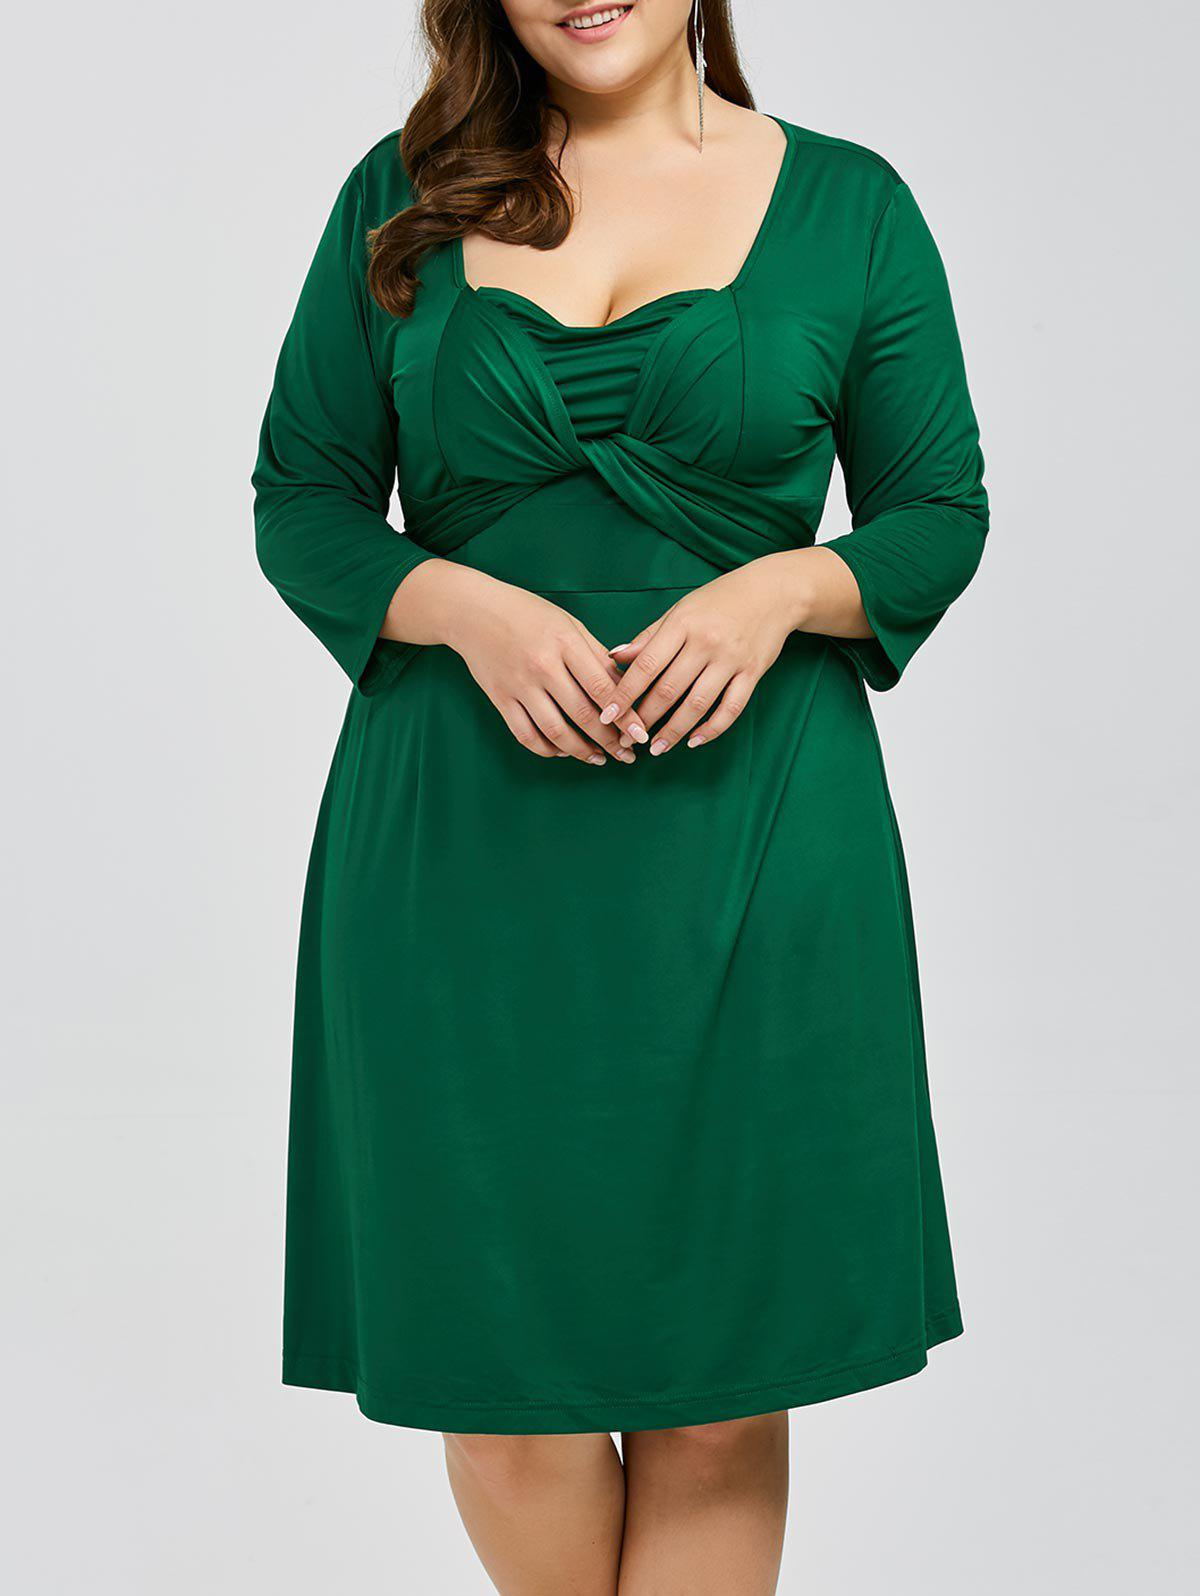 Plus Size Criss Cross Knee Length Dress plus size belted knee length dress with pockets